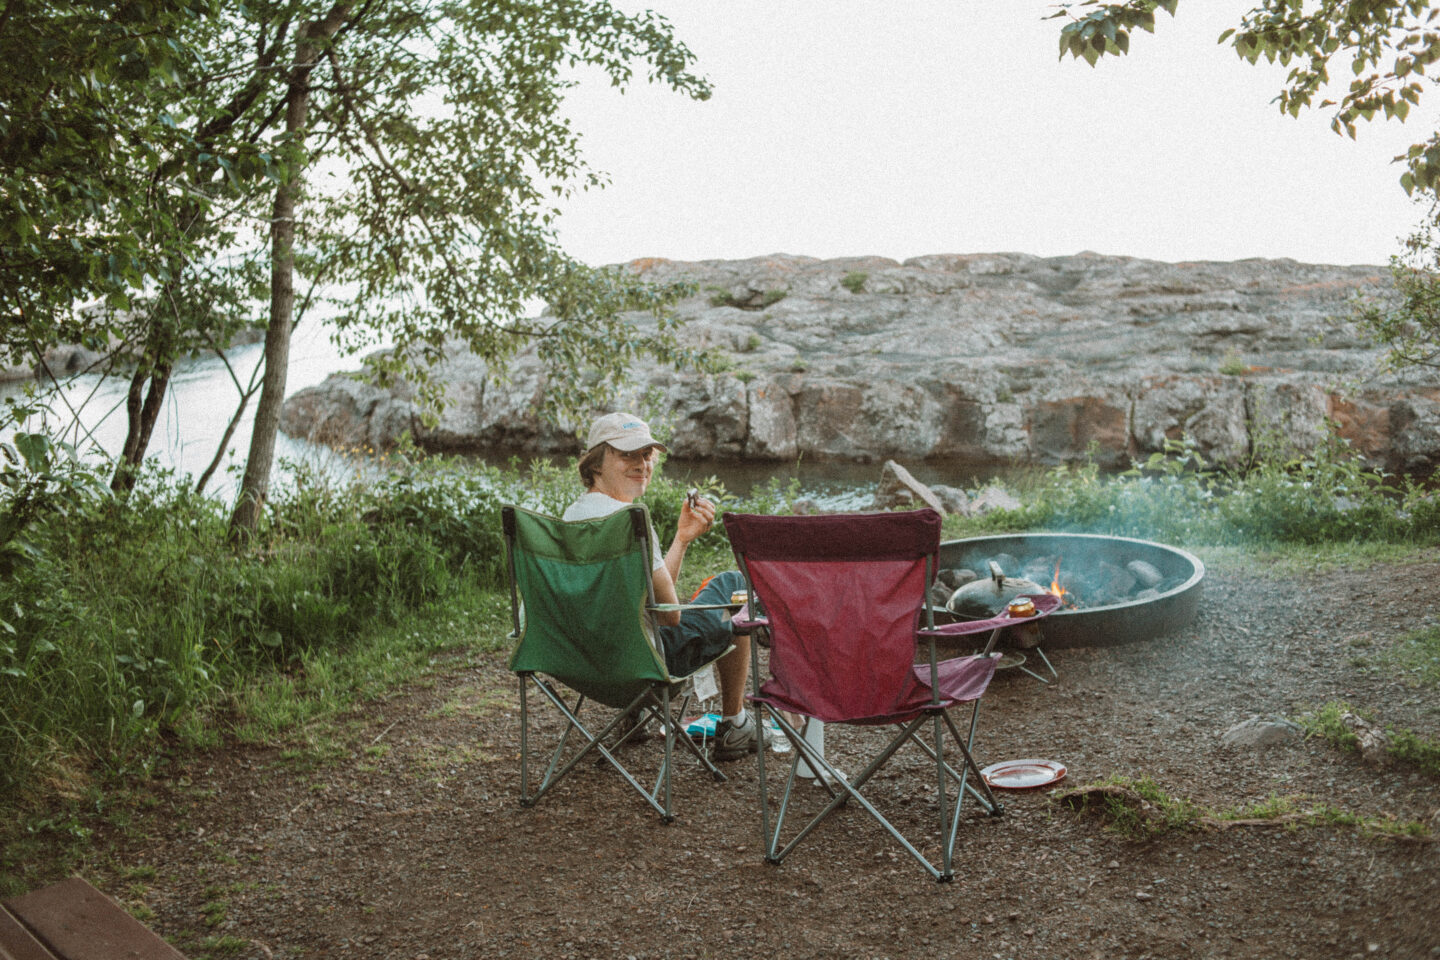 What to Wear and Pack for Warm Weather Tent Camping